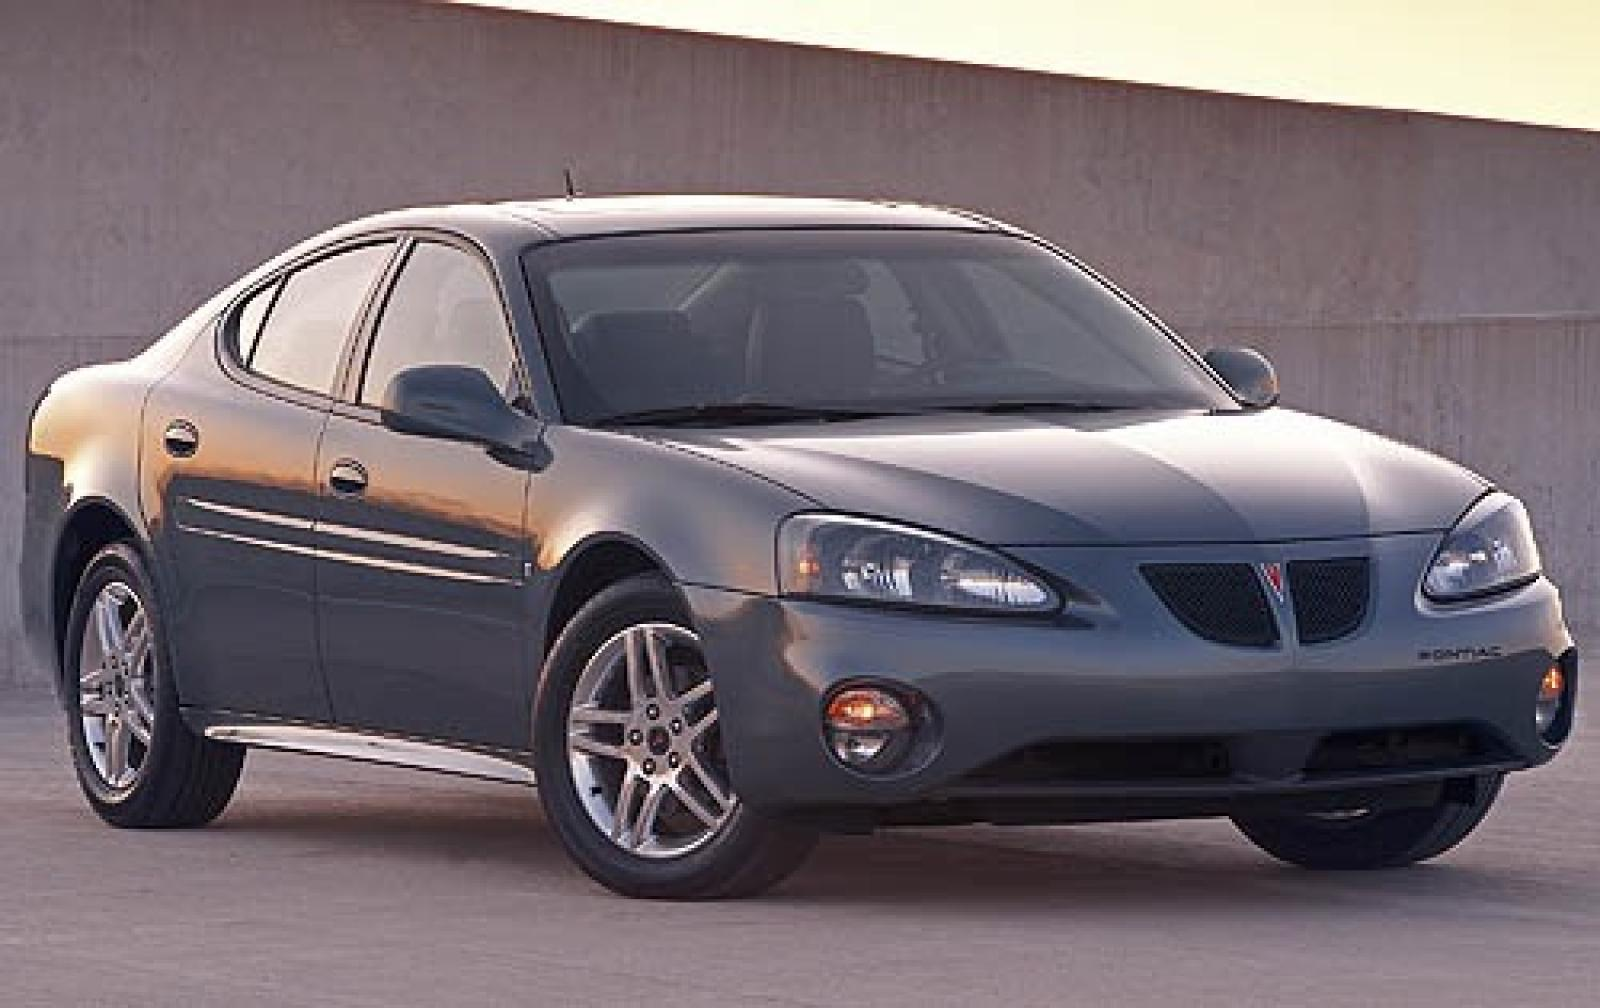 2007 pontiac grand prix information and photos zombiedrive. Black Bedroom Furniture Sets. Home Design Ideas